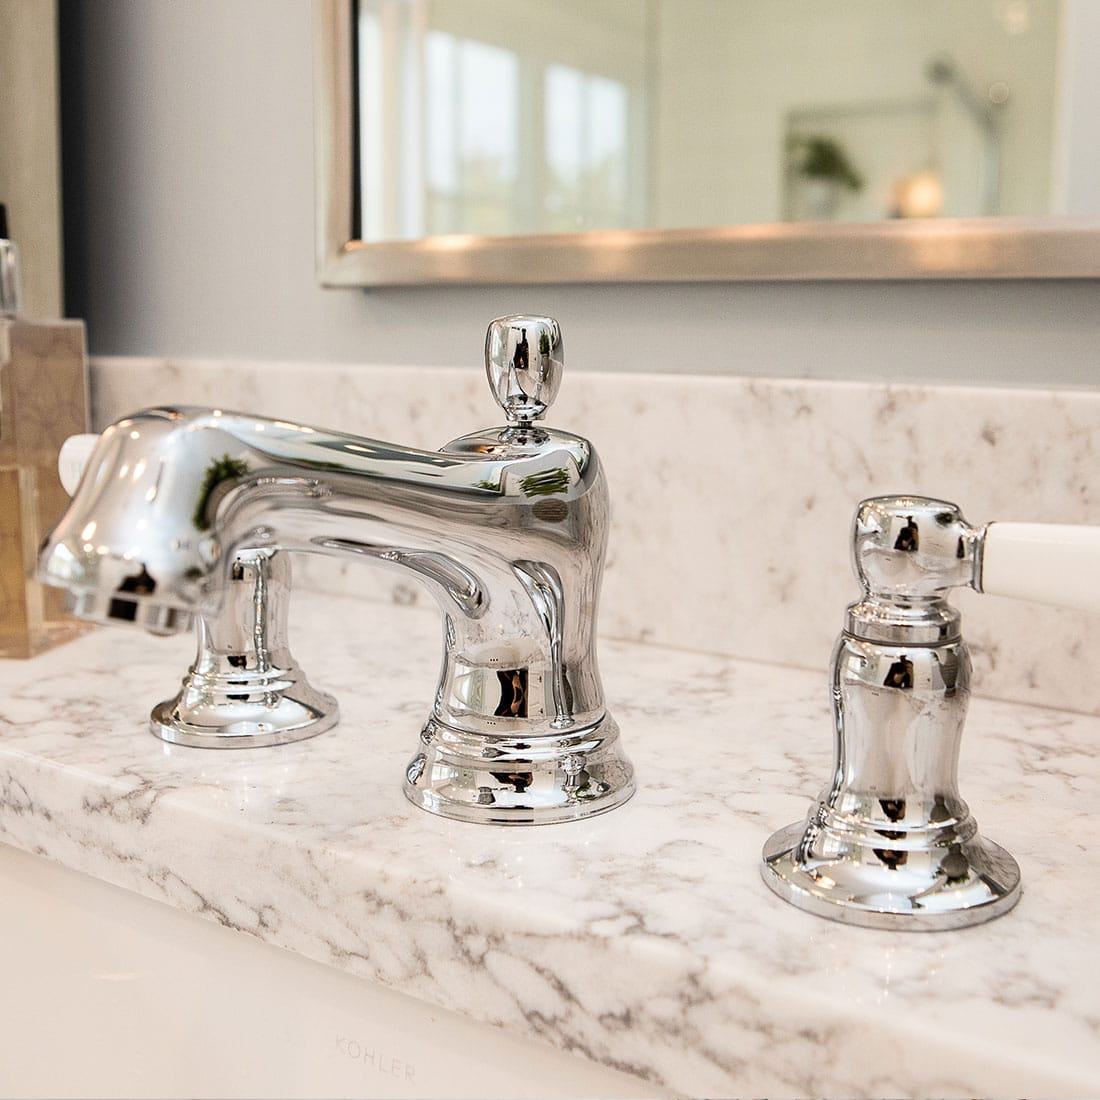 Modern chrome faucet on white marble counter in renovated bath